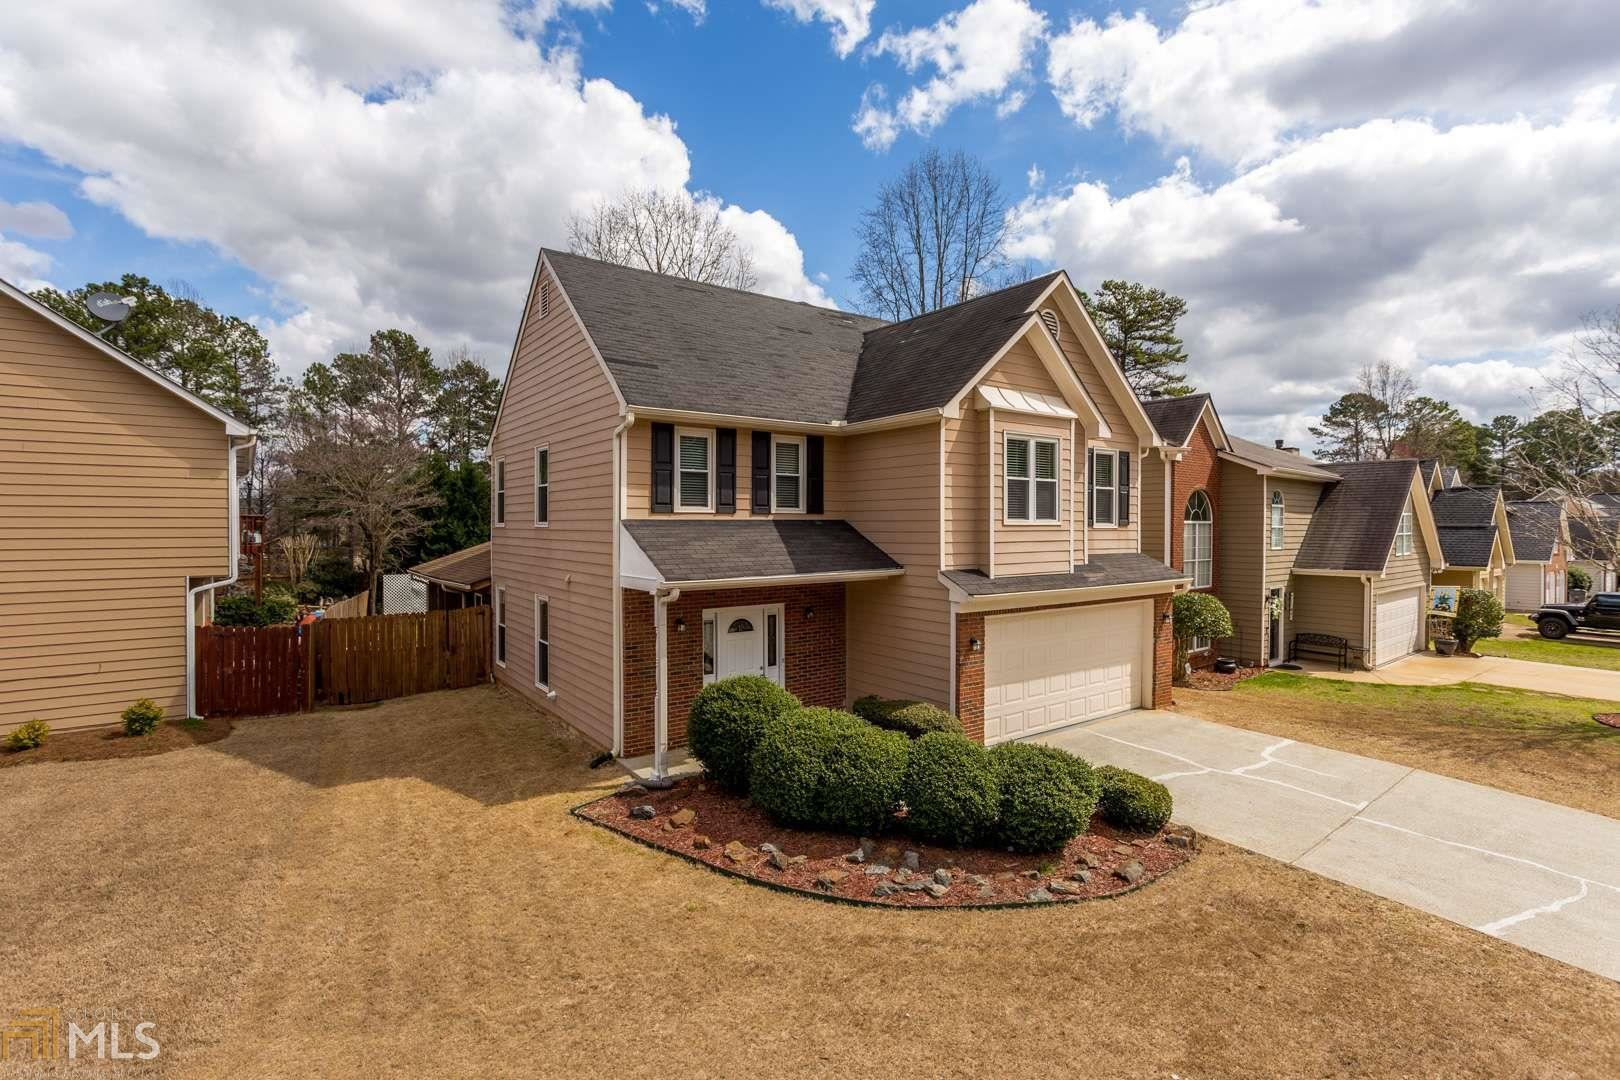 820 Ahearn Ct, Suwanee, GA 30024 - #: 8790909